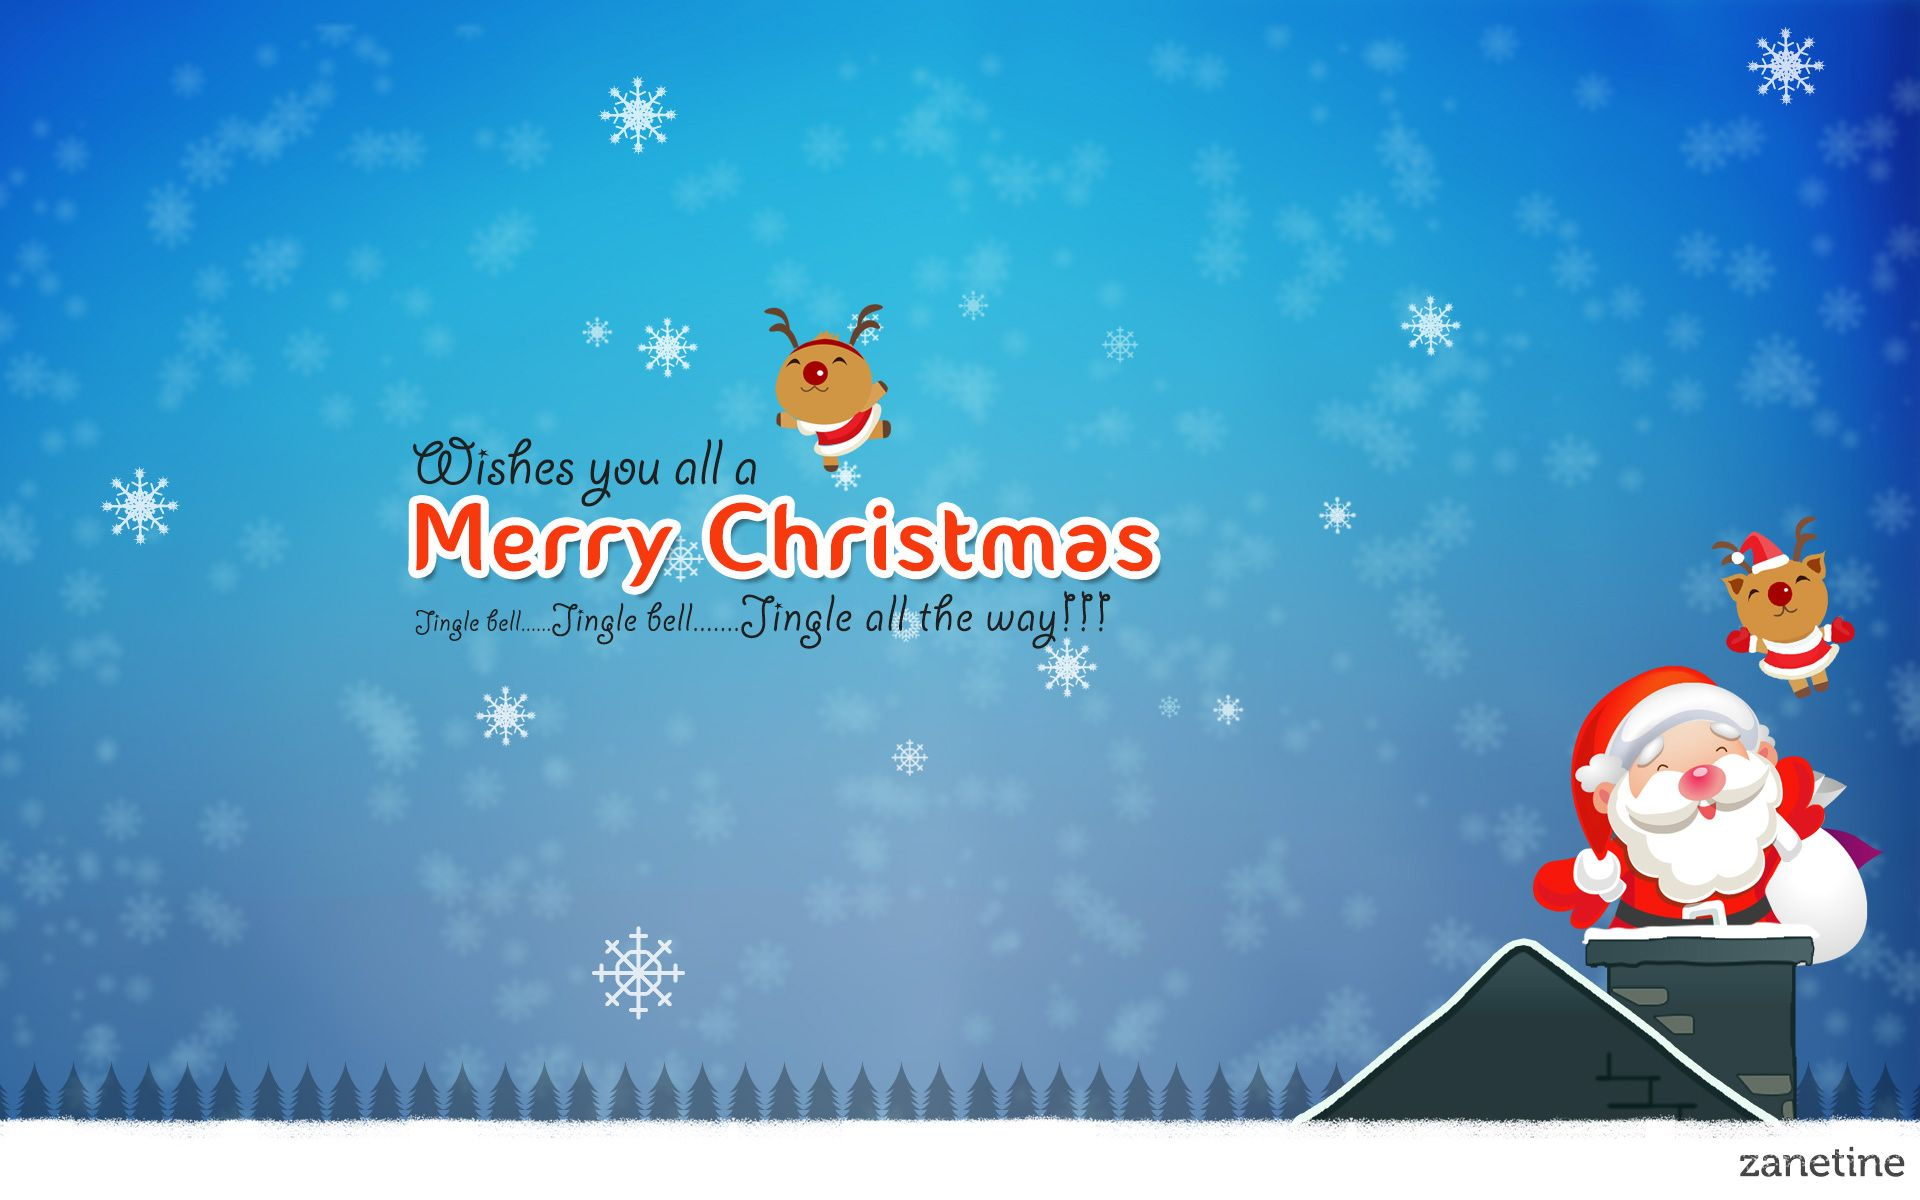 merry christmas images wallpapers quotes | merry christmas images